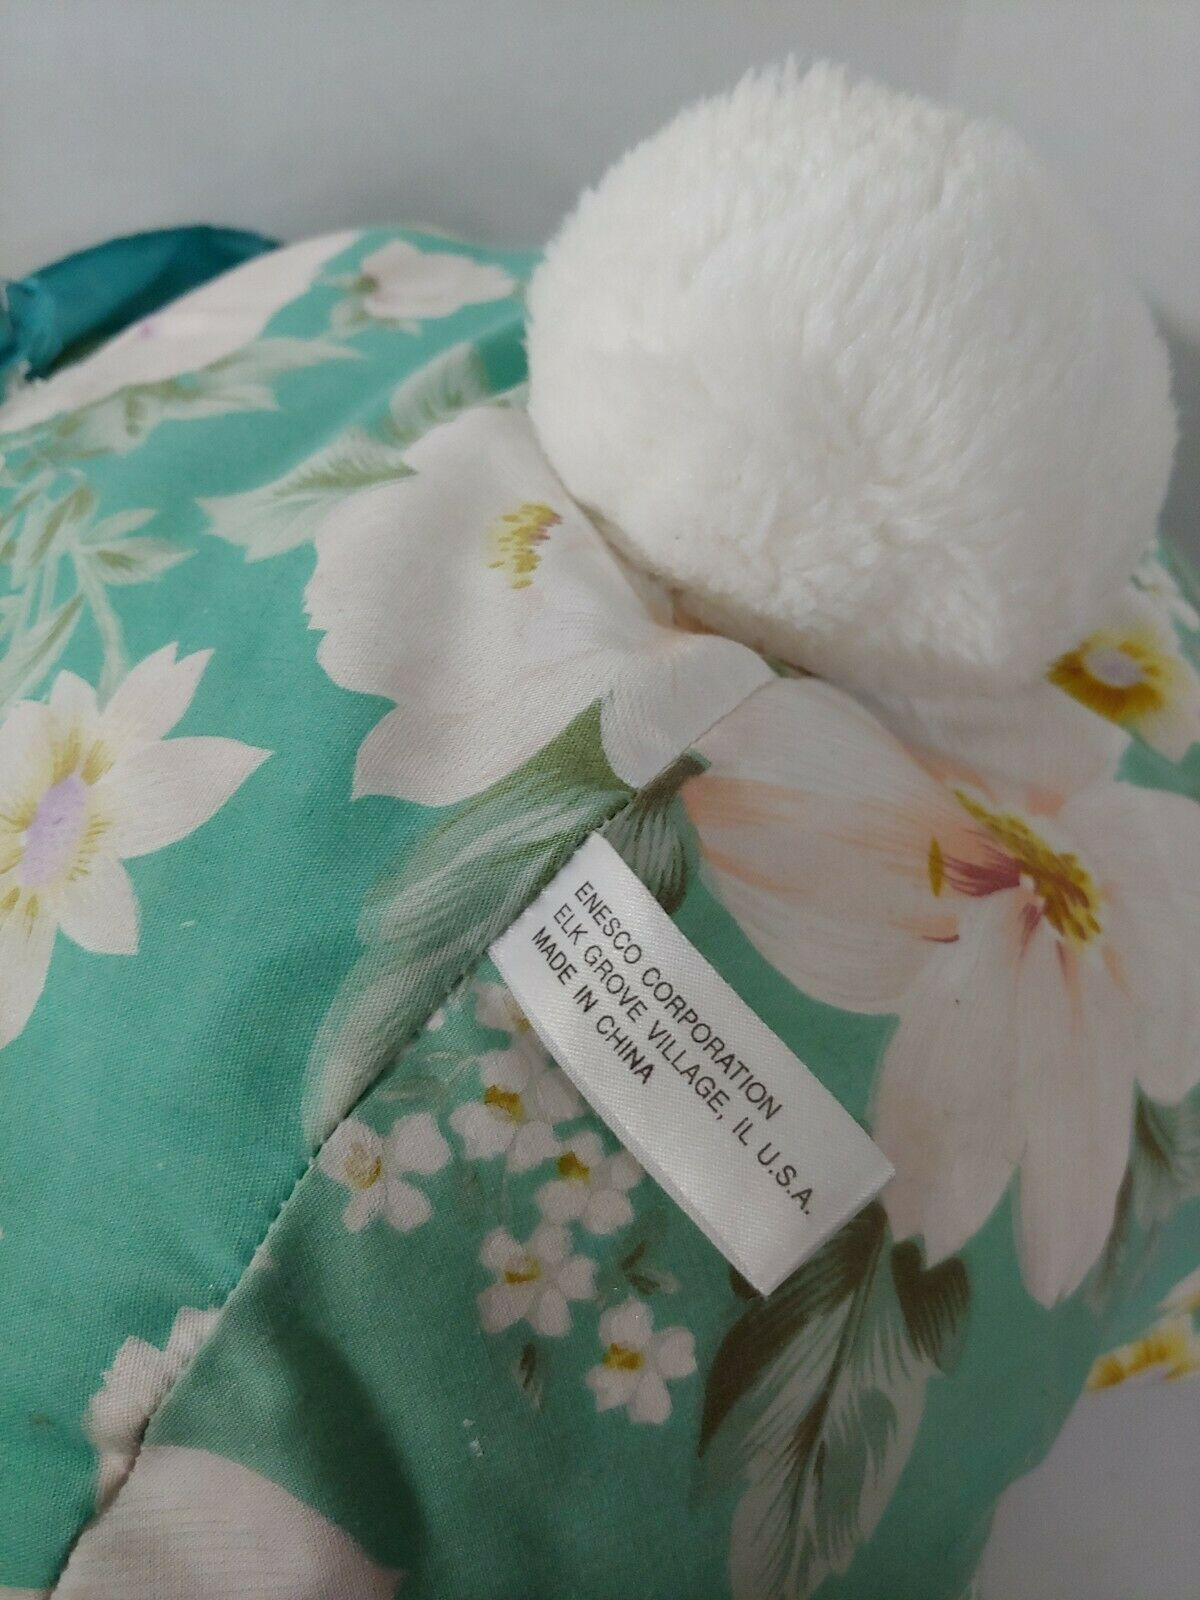 Enesco Plush white teddy bear green floral flowers outfit lace collar pink nose image 7